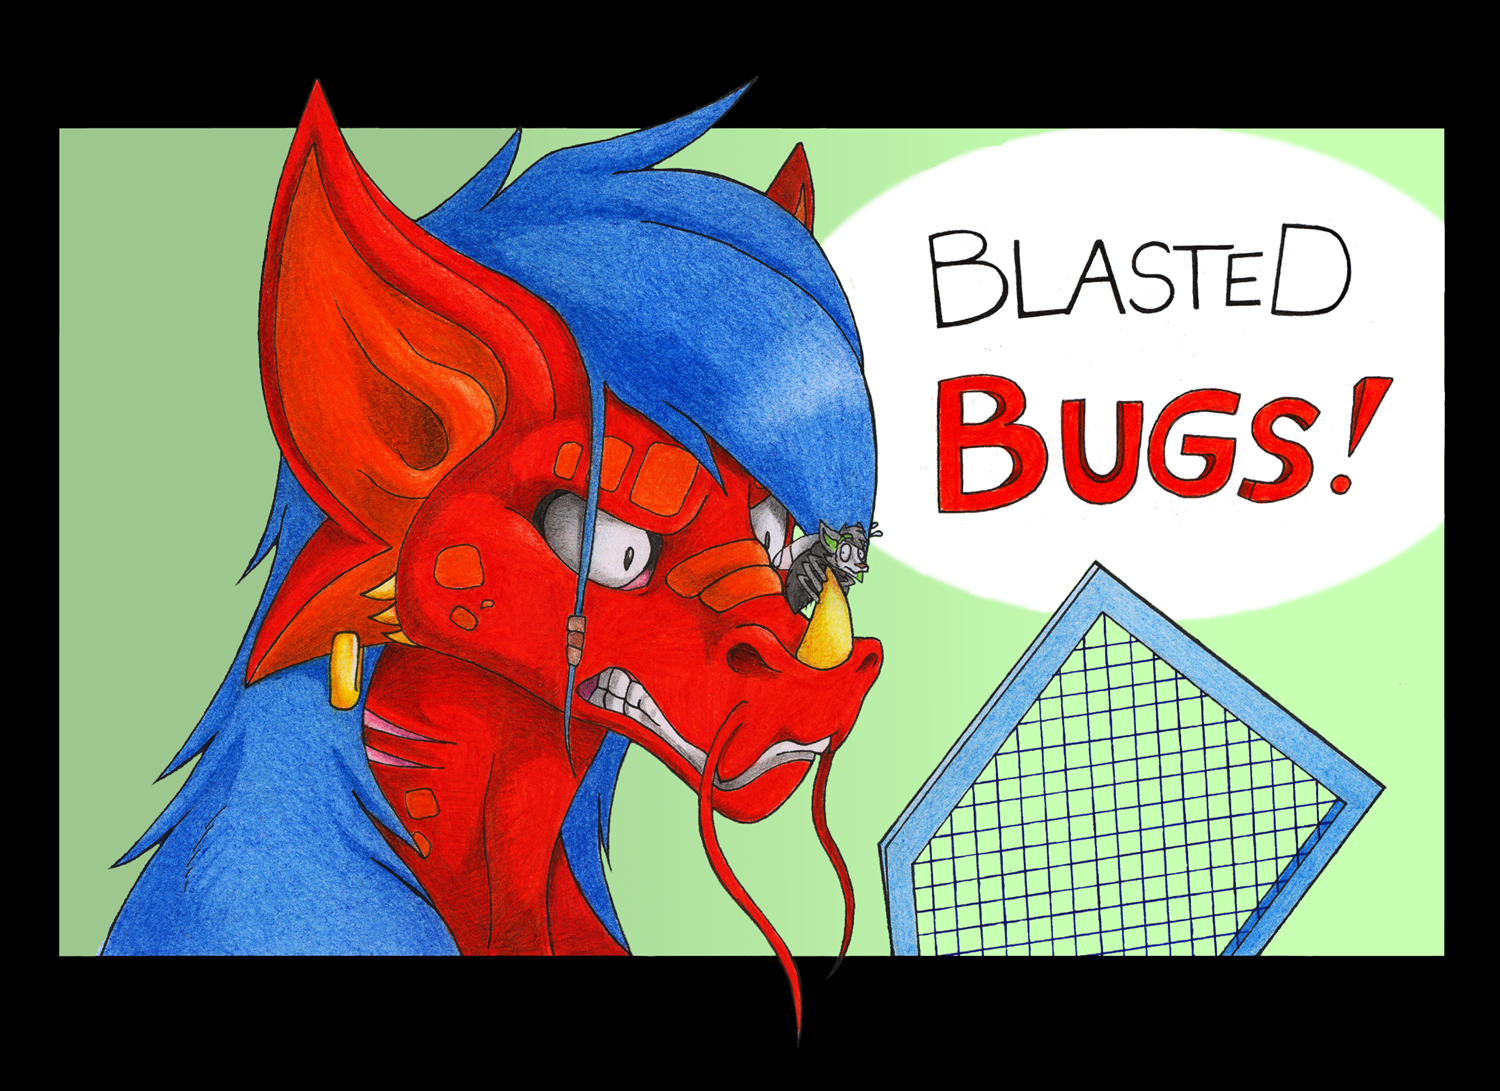 Blasted bugs ! by Danwolf